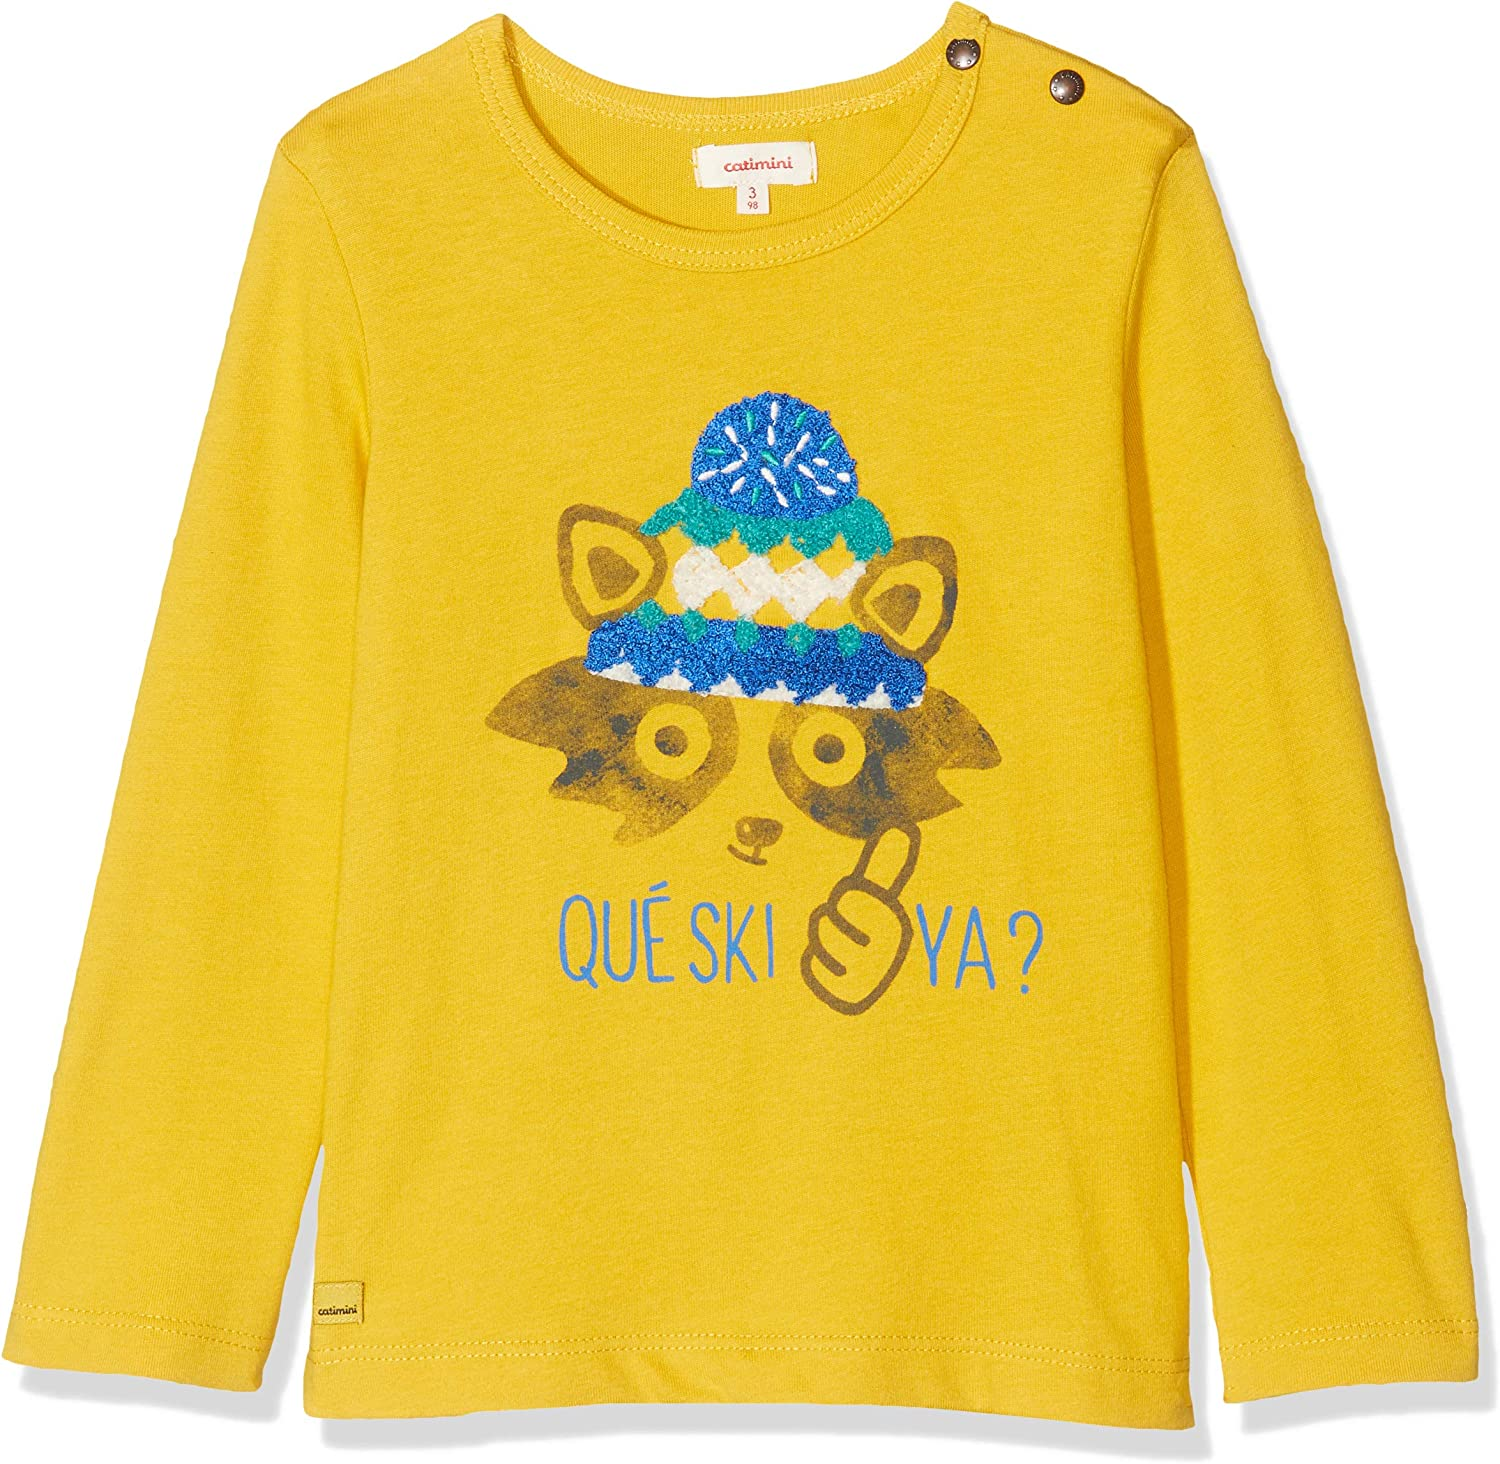 Catimini Boys Long-Sleeved Top